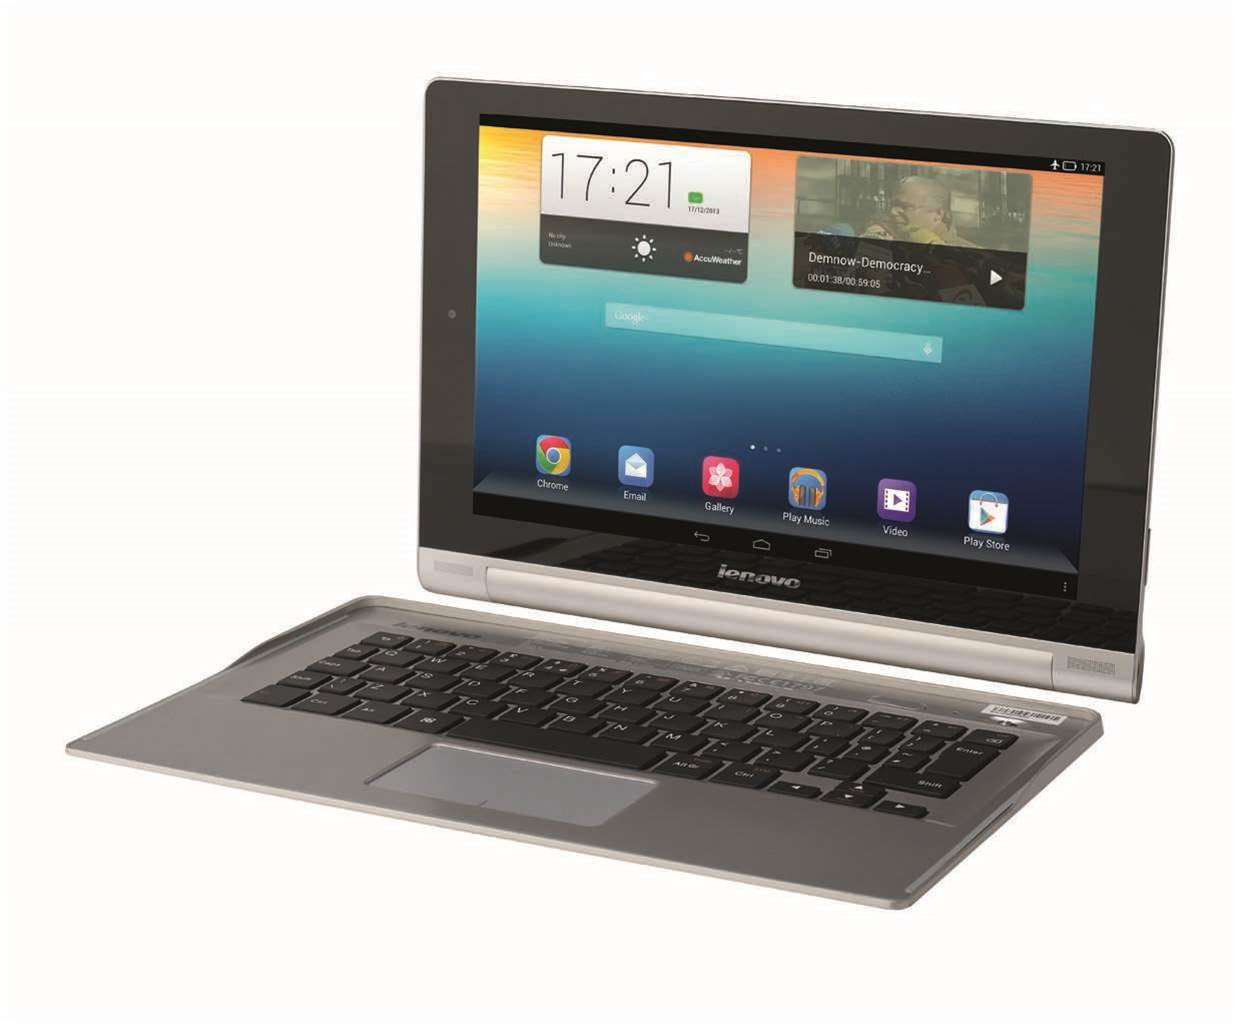 Review: Lenovo Yoga Tablet 10